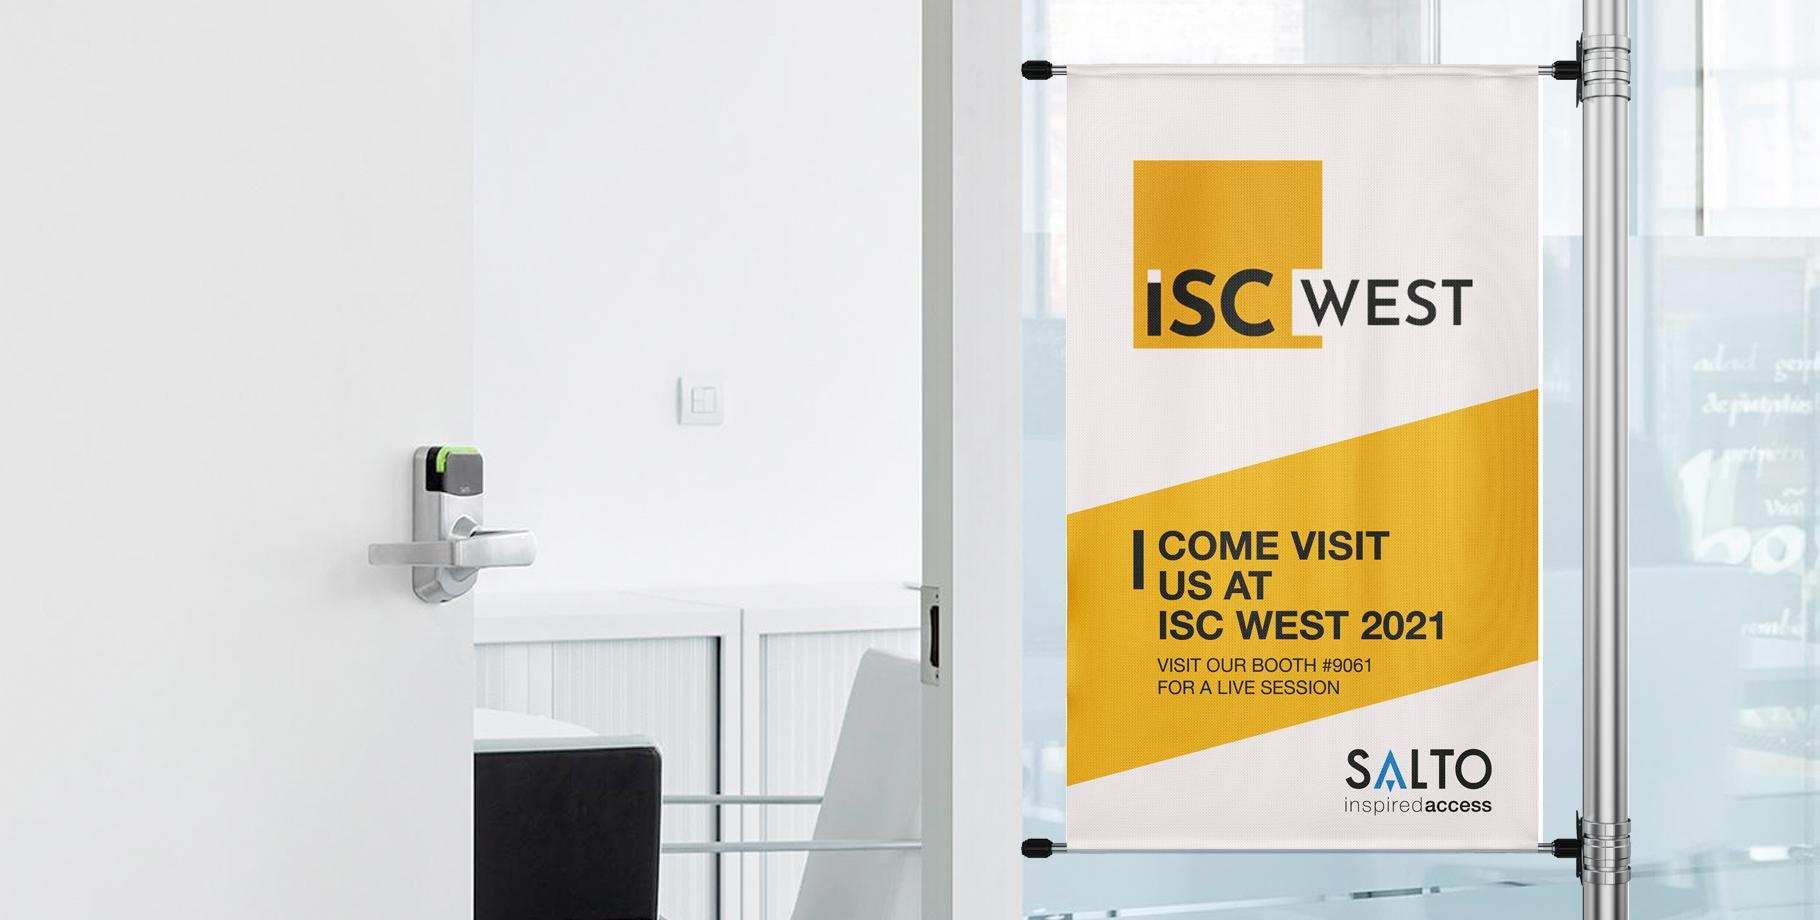 Come visit us at ISC WEST 2021